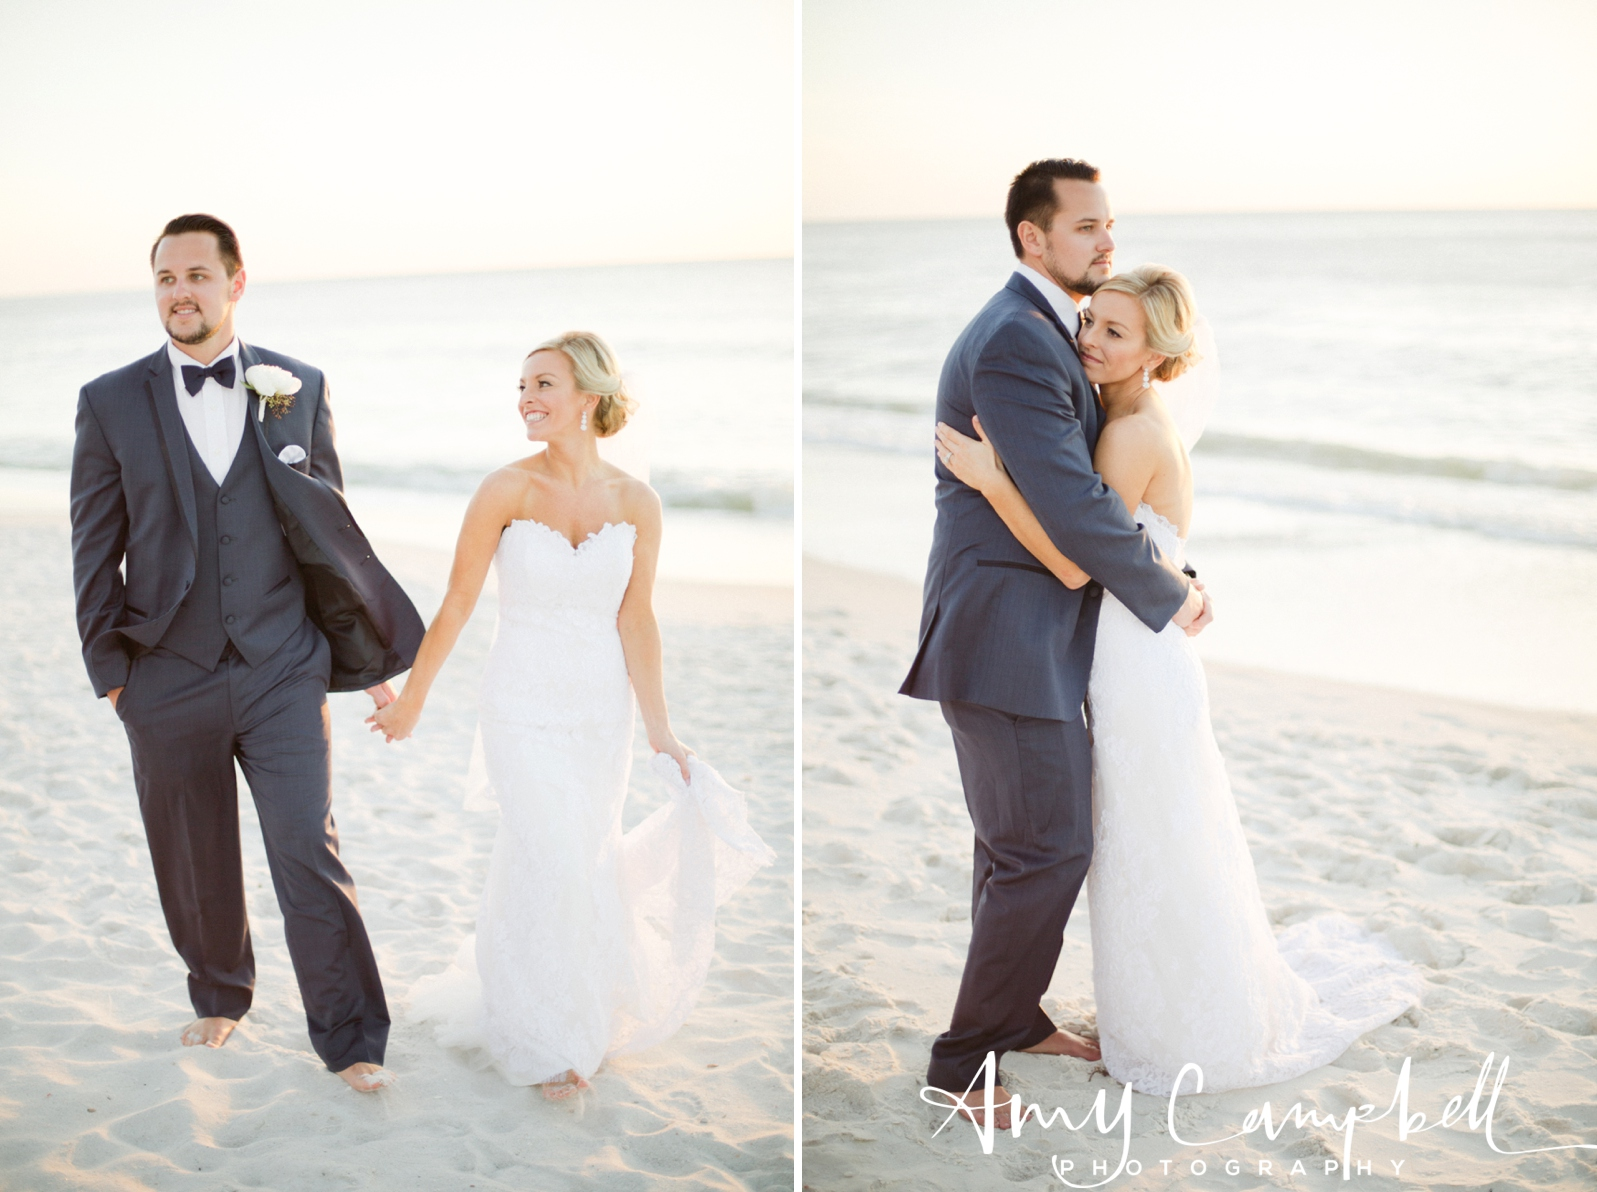 EricaandDexter_Wed_FB_AmyCampbellPhotography_0033.jpg